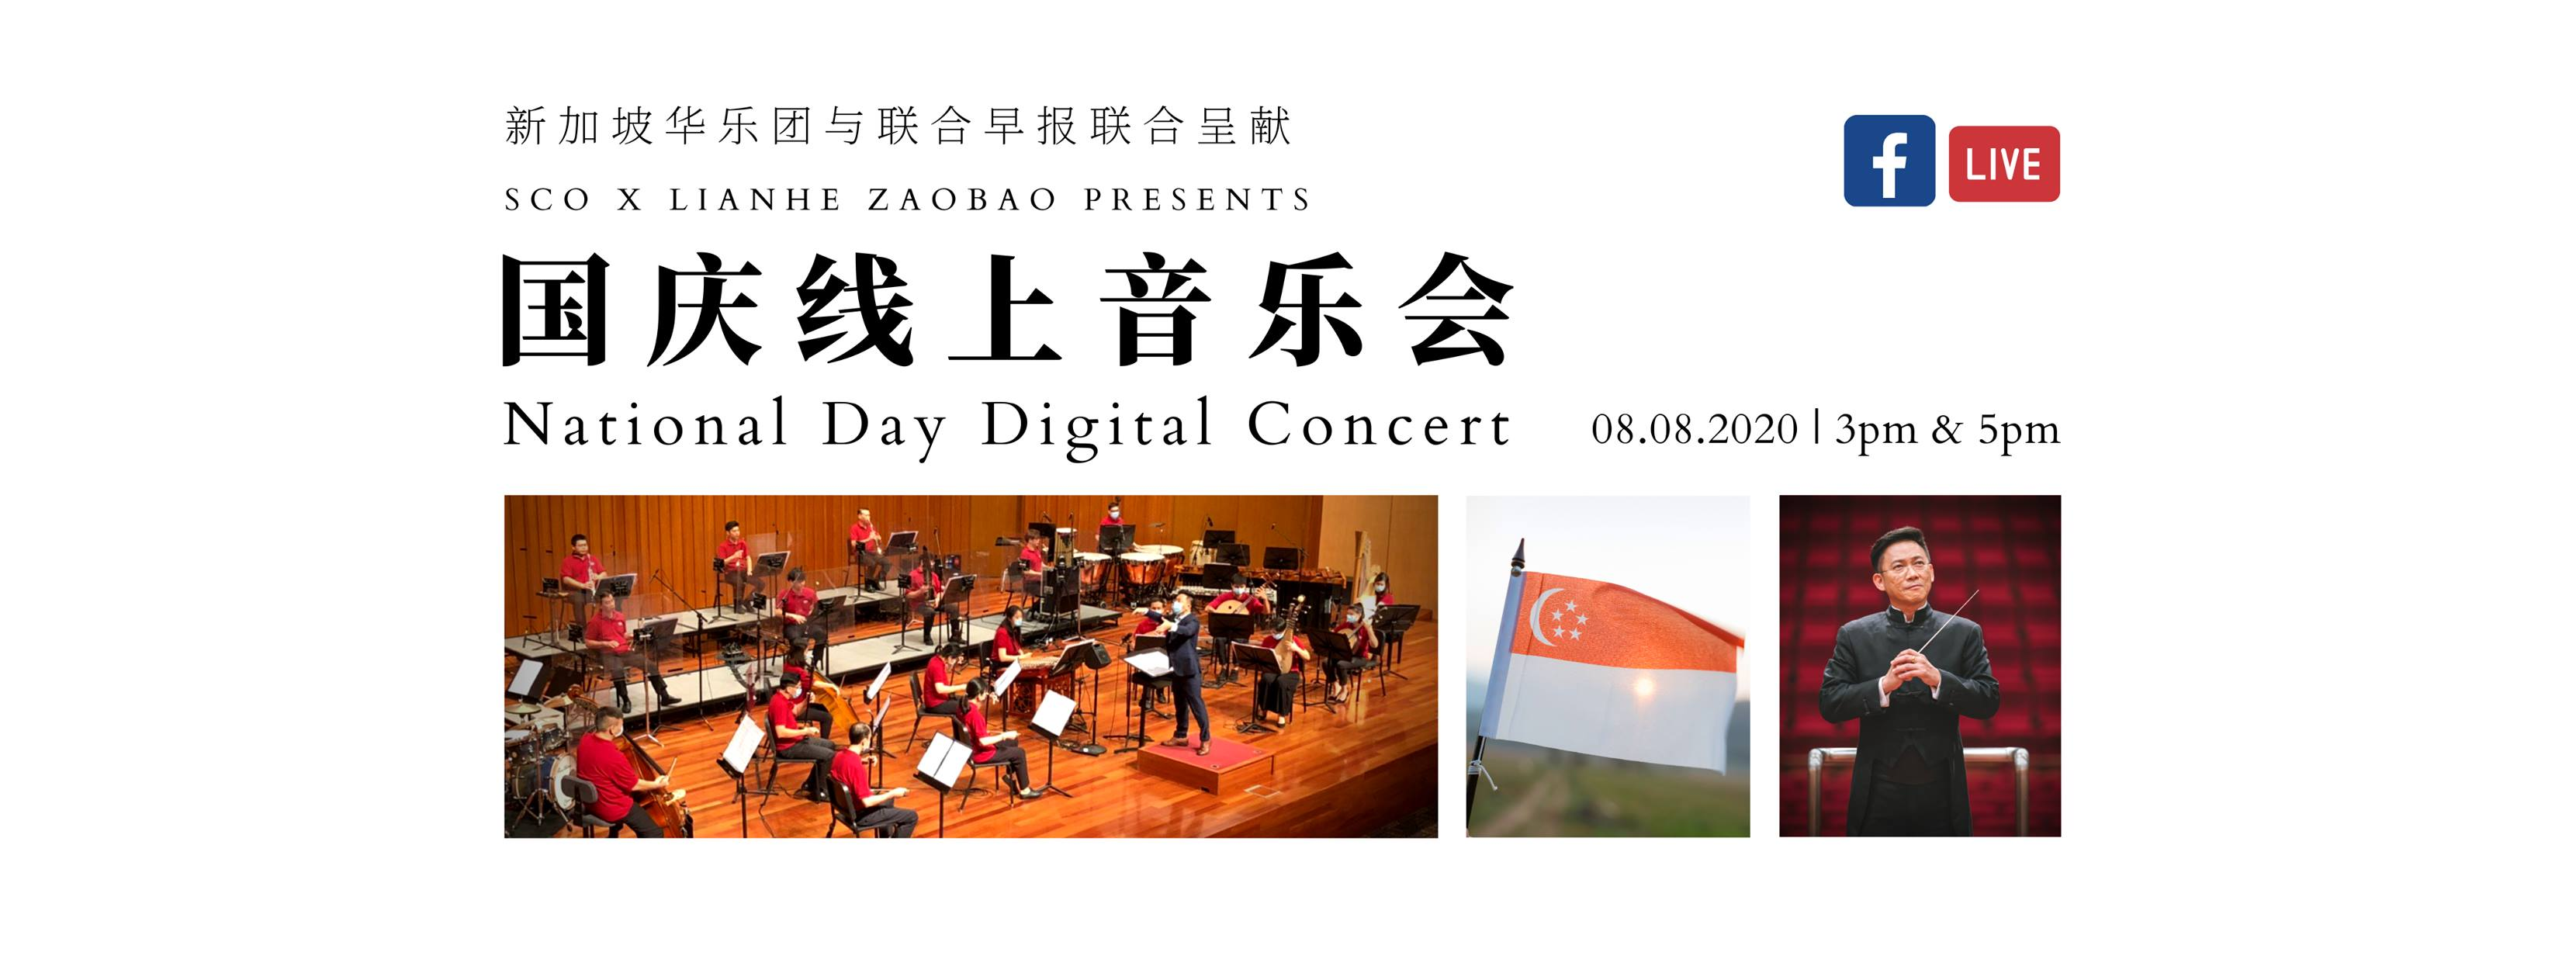 Singapore Chinese Orchestra X Lianhe Zaobao Present National Day Digital Concert 8 Aug 2020